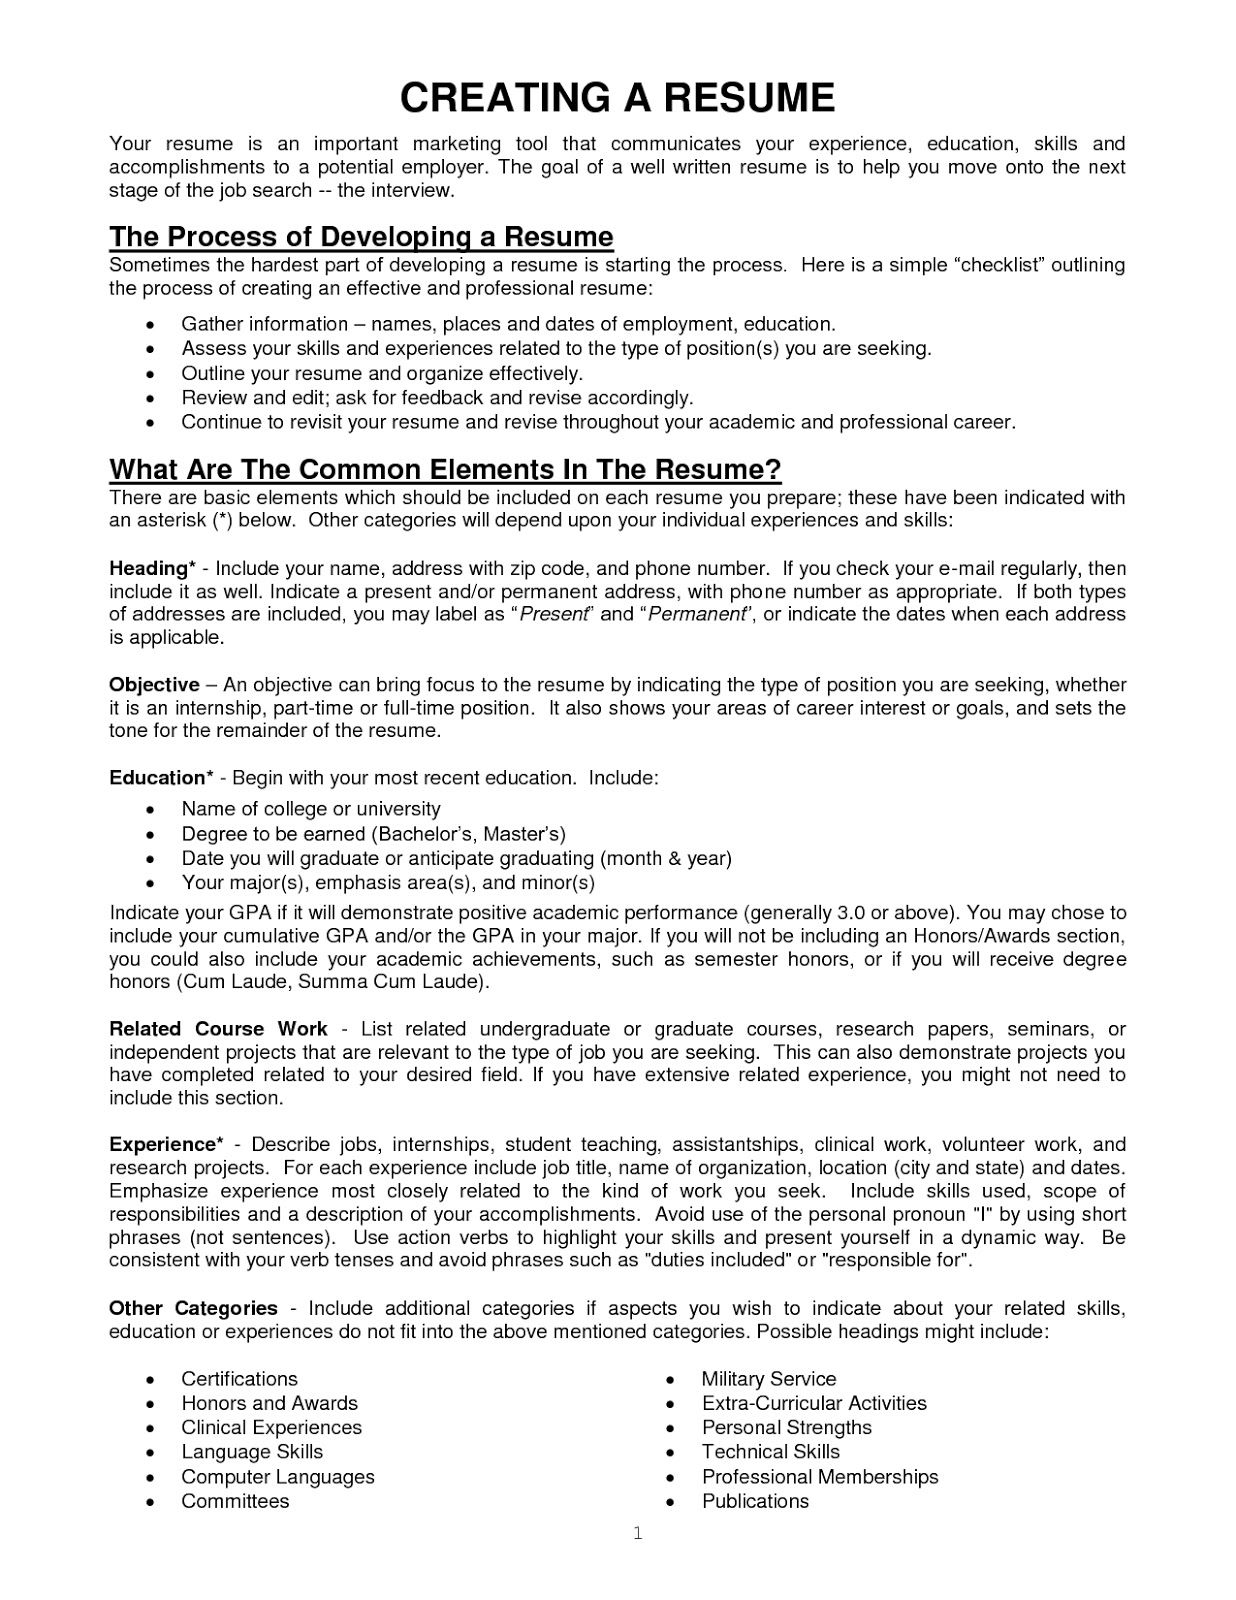 Resume Format Checker Resume Writing Examples Reference Page